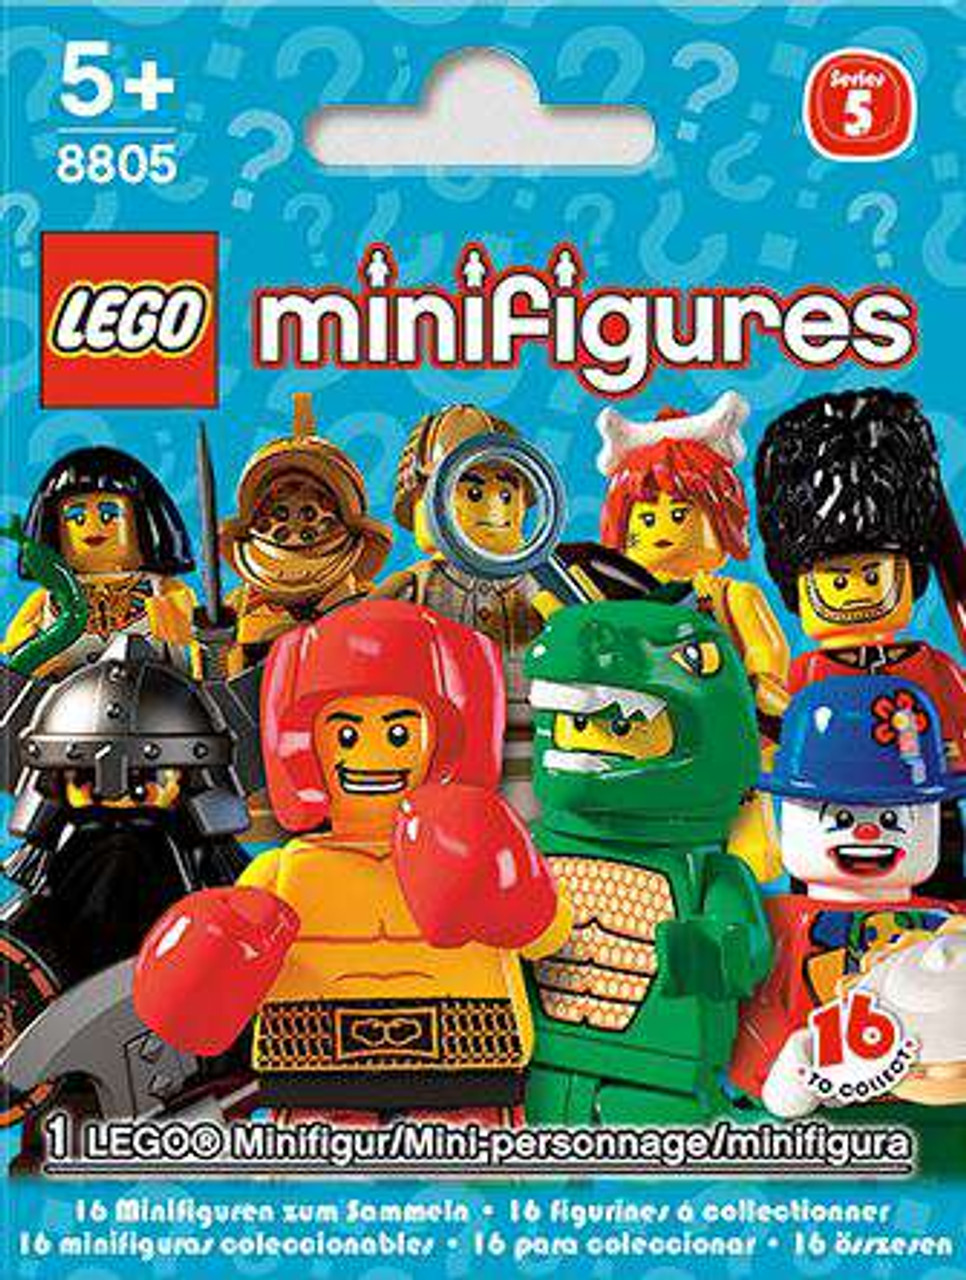 New Genuine LEGO Cave Woman Minifig with Club Series 5 8805